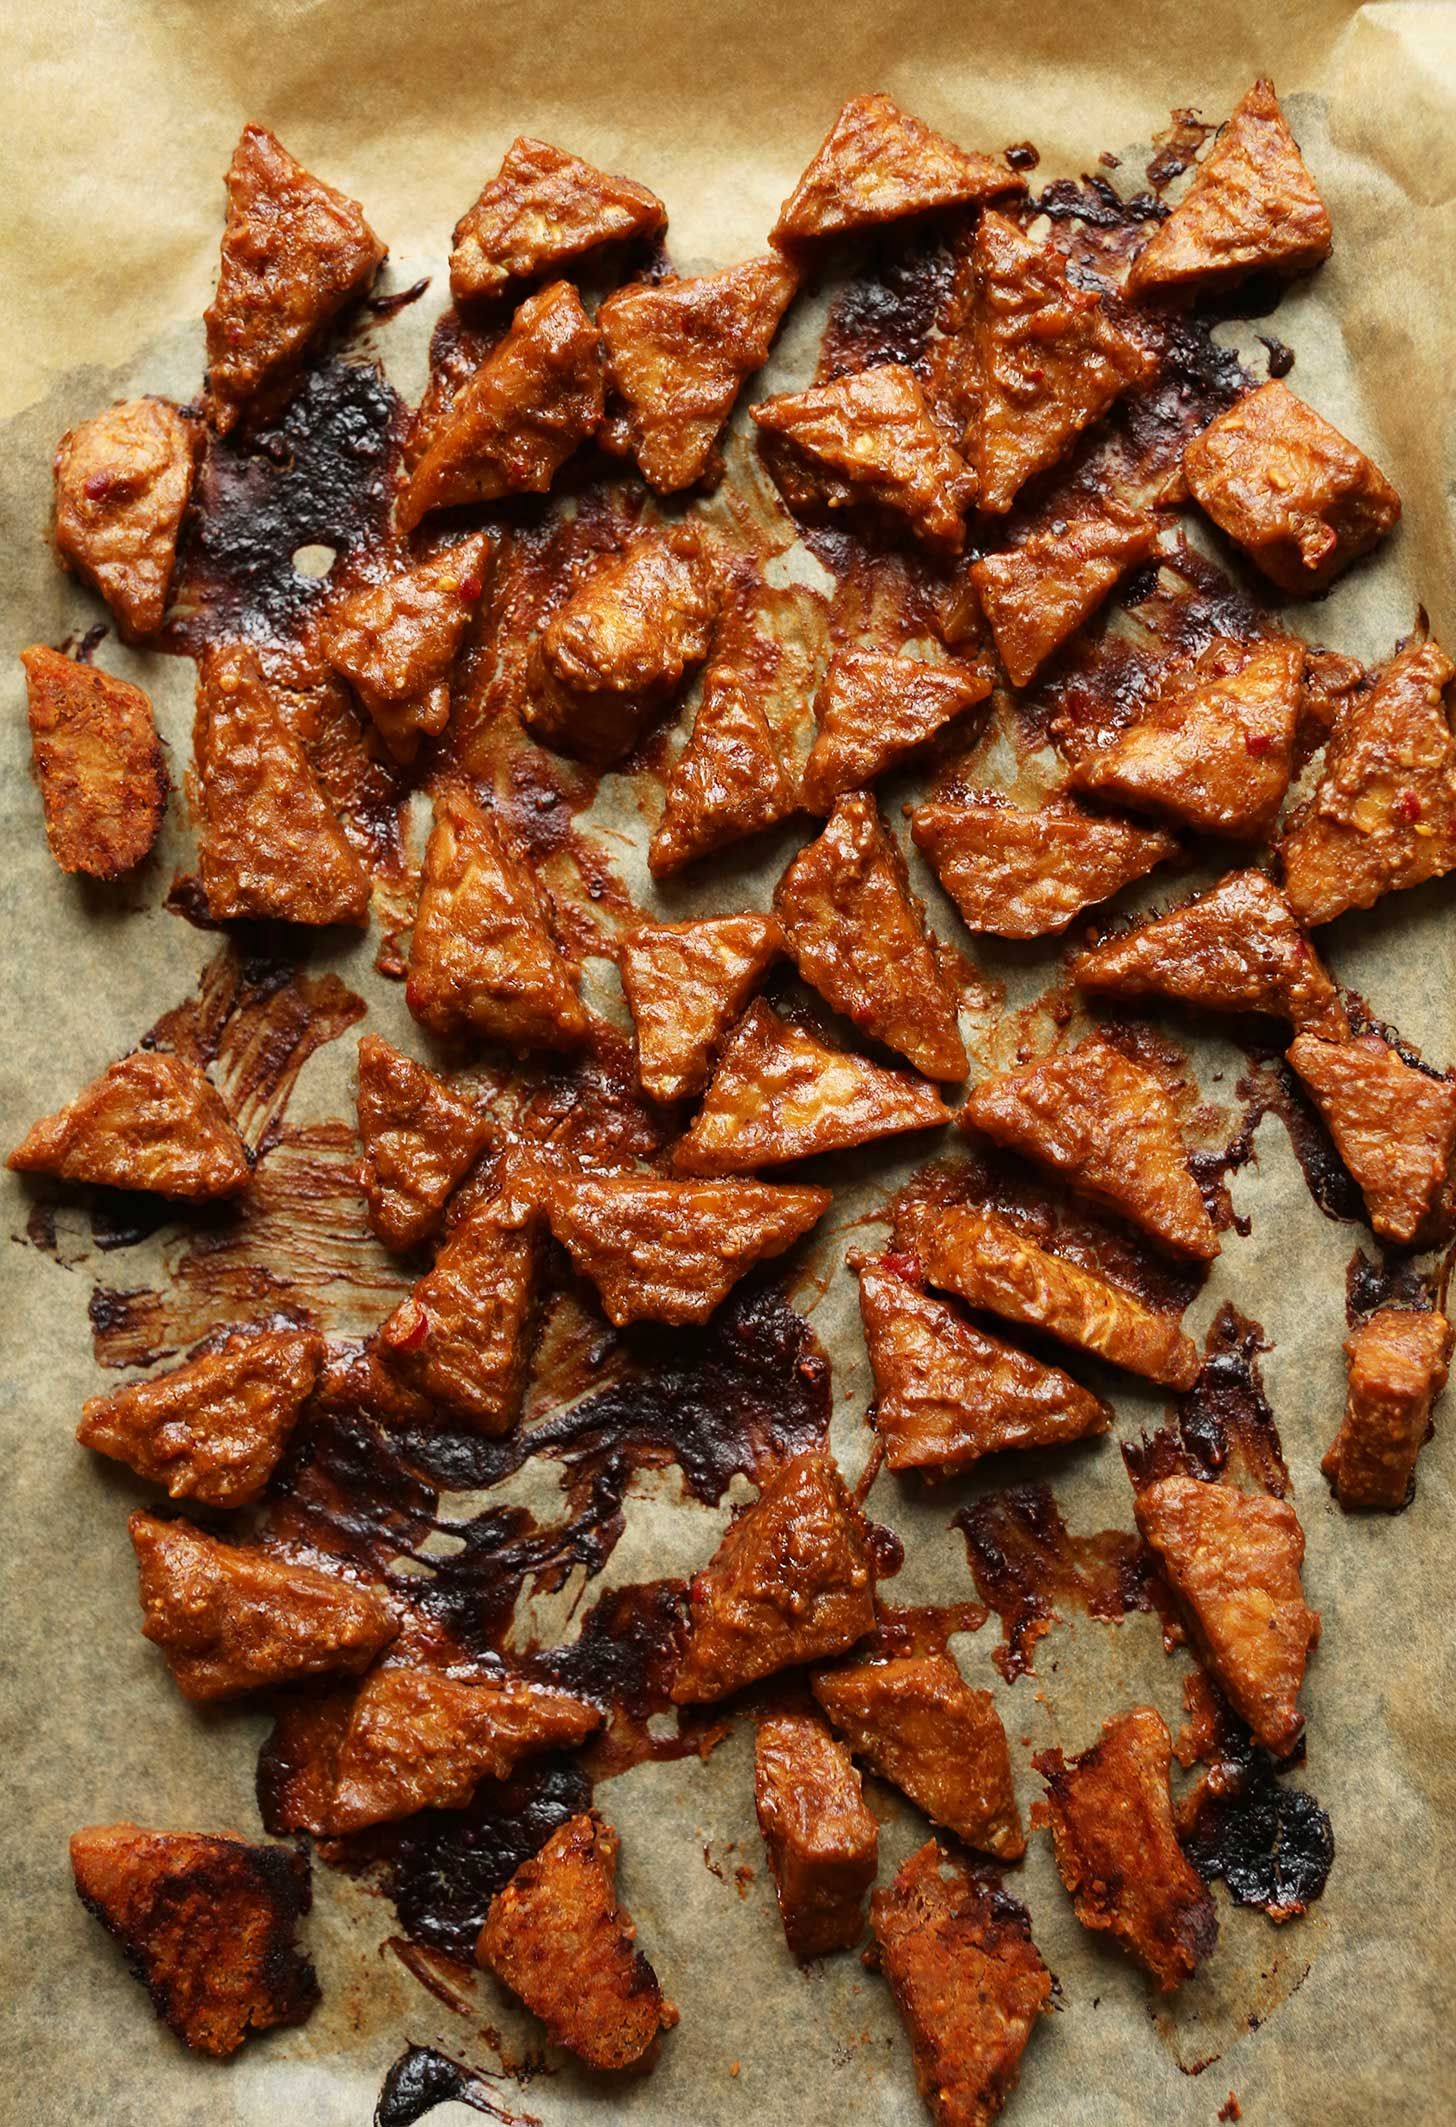 EASY Marinated Peanut Tofu! 7 ingredients, marinated then baked! Saucy, spicy, sweet, and SO delicious! #vegan #glutenfree #tempeh #recipe